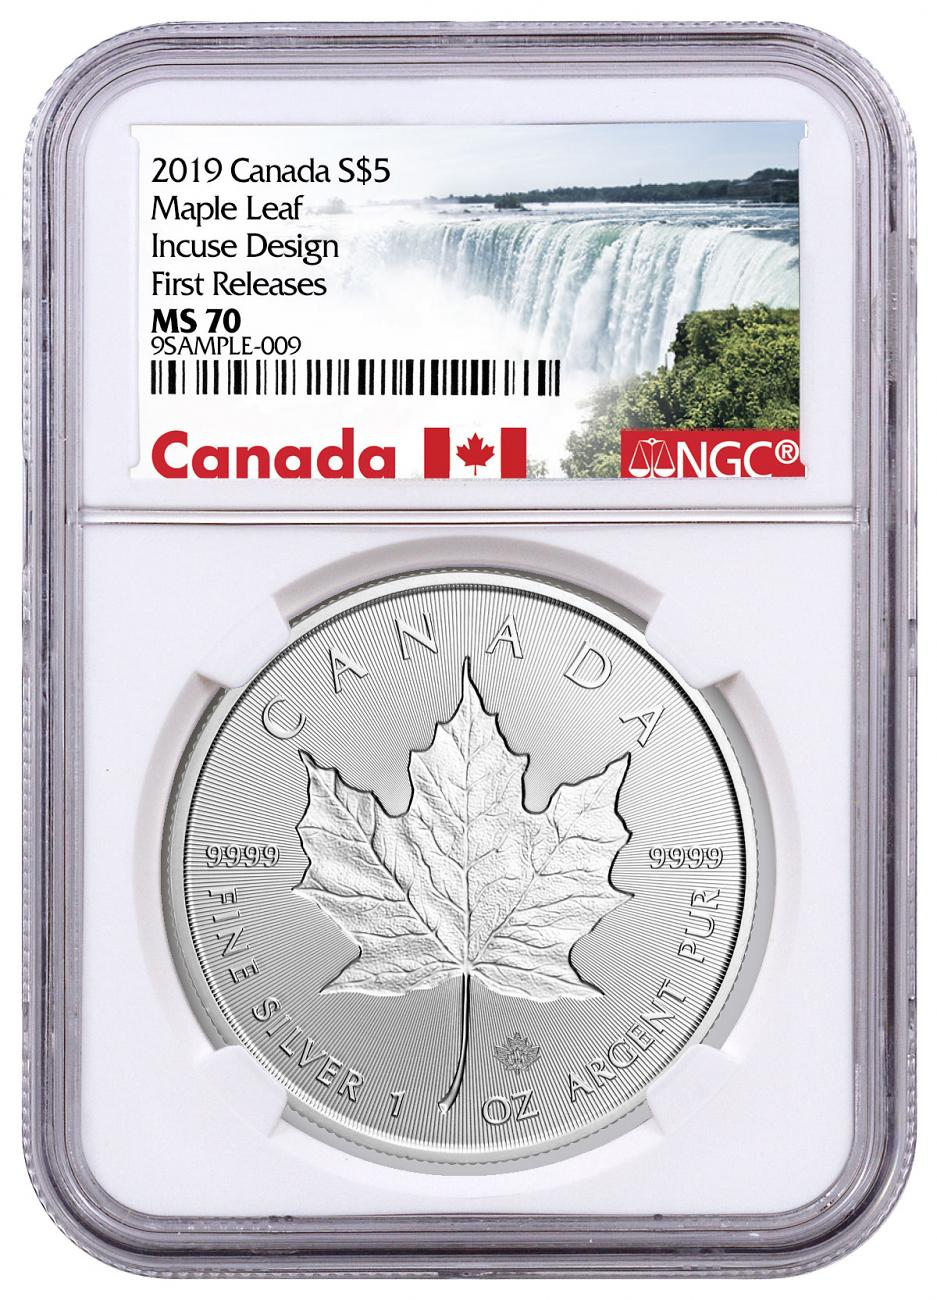 2019 Canada 1 oz Silver Maple Leaf - Incuse $5 Coin NGC MS70 FR Exclusive Canada Label